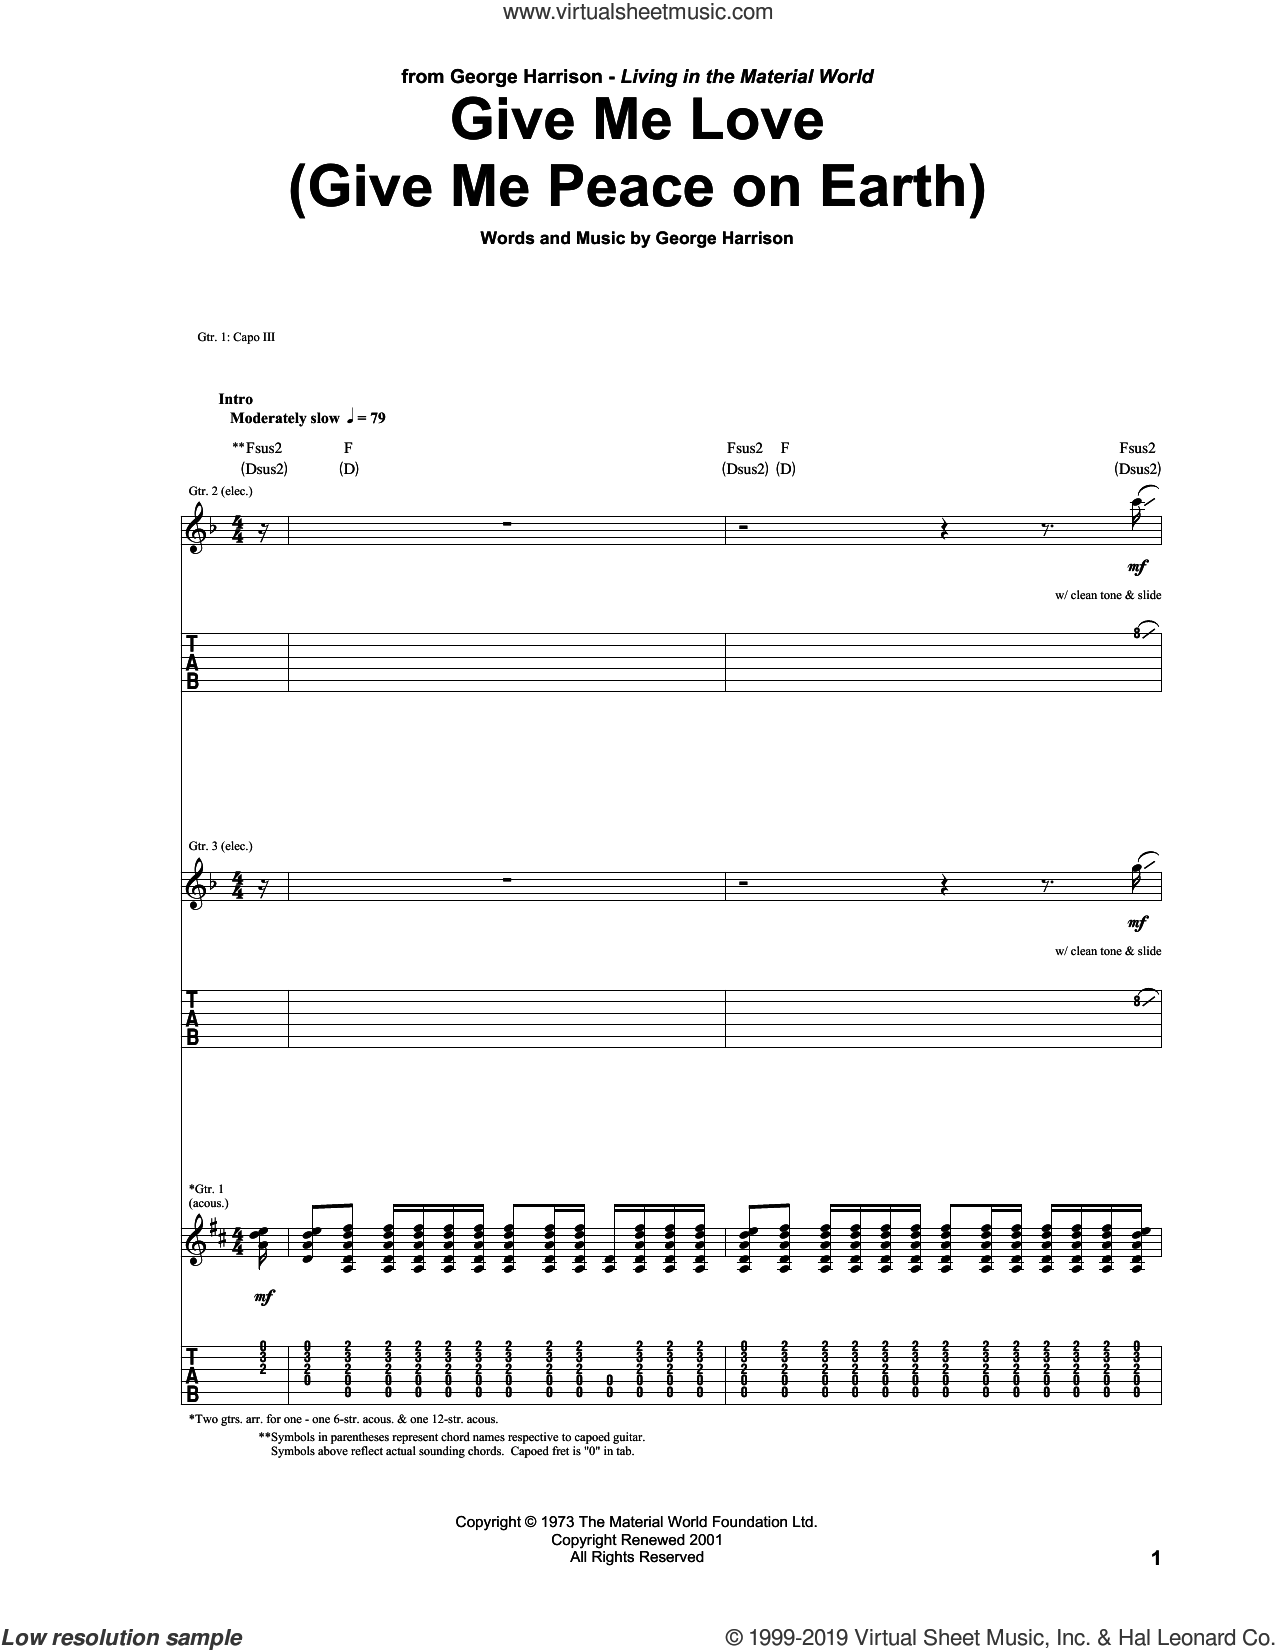 Give Me Love (Give Me Peace On Earth) sheet music for guitar (tablature) by George Harrison, intermediate skill level